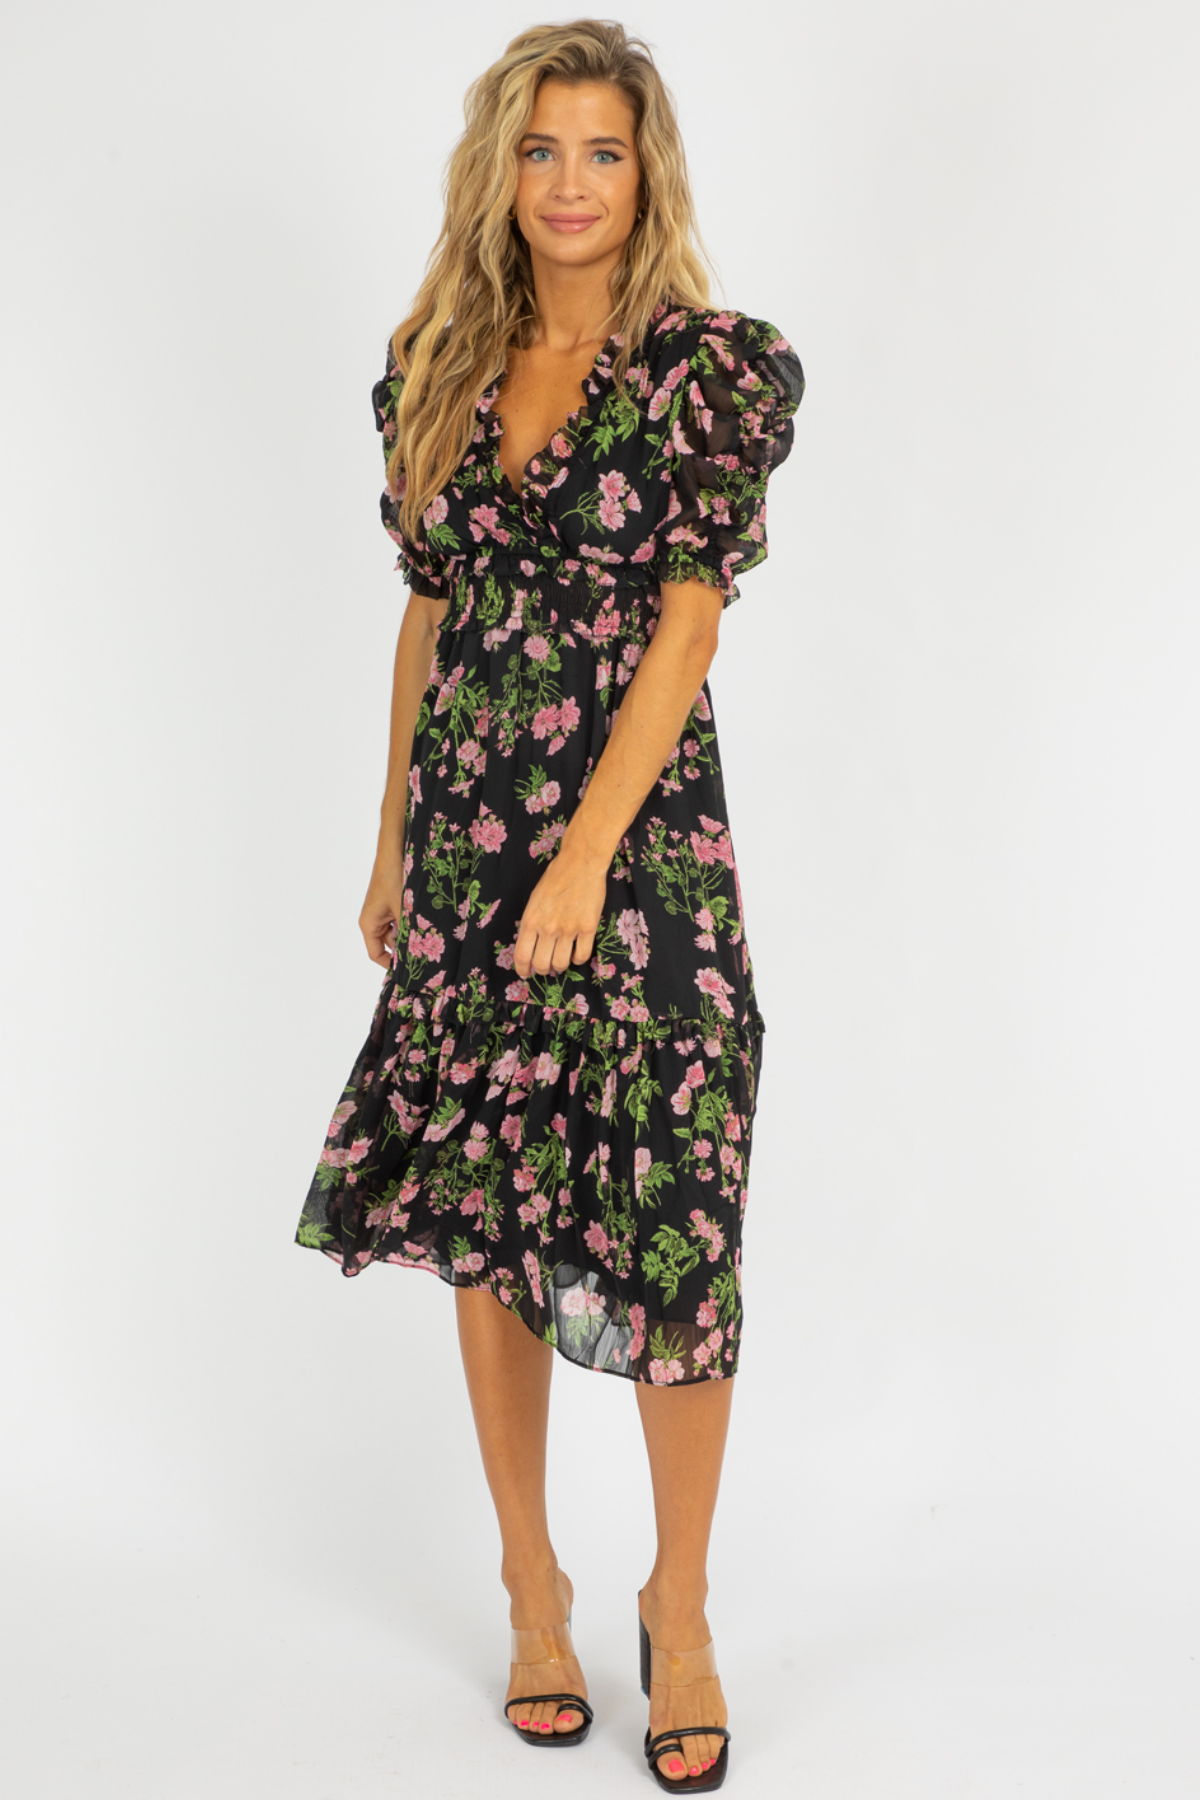 RUFFLED ROSE FLORAL MIDI